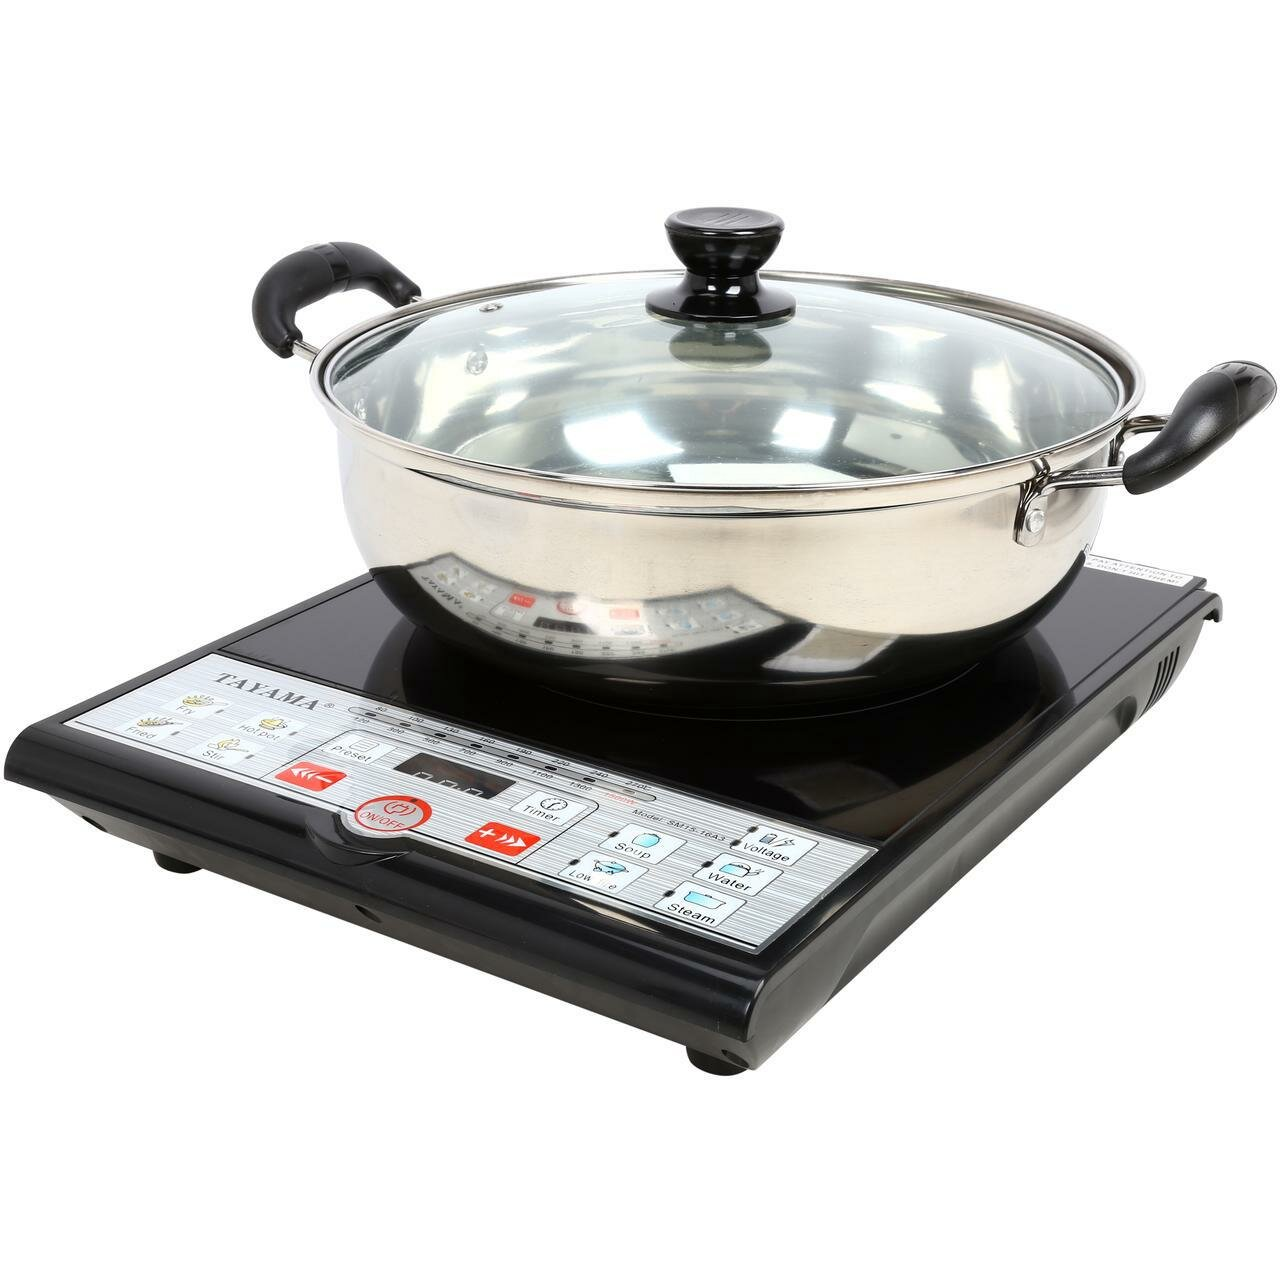 Pot For Induction Cooker ~ Tayama induction cooker with cooking pot reviews wayfair